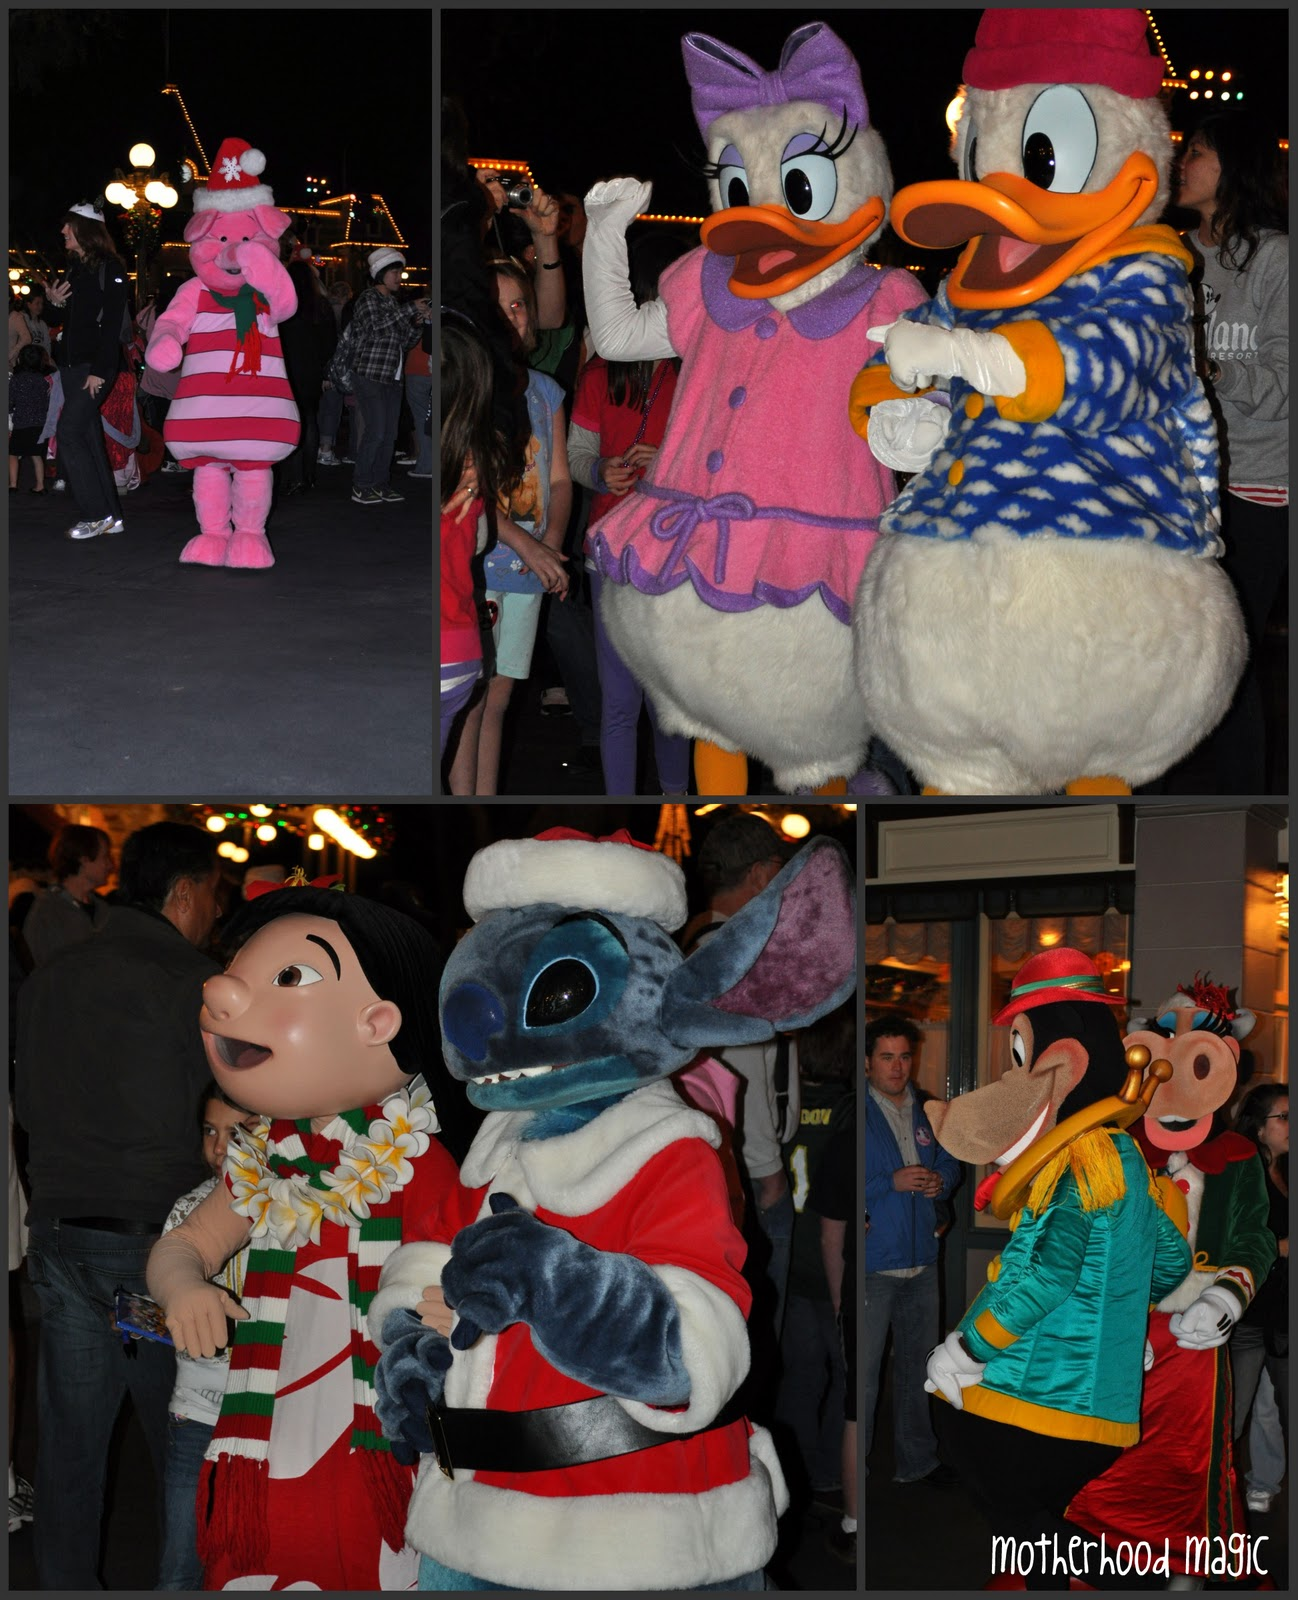 Wordless Wednesday Mickey Mouse: Magical Days With The Mouse: Almost Wordless Wednesday